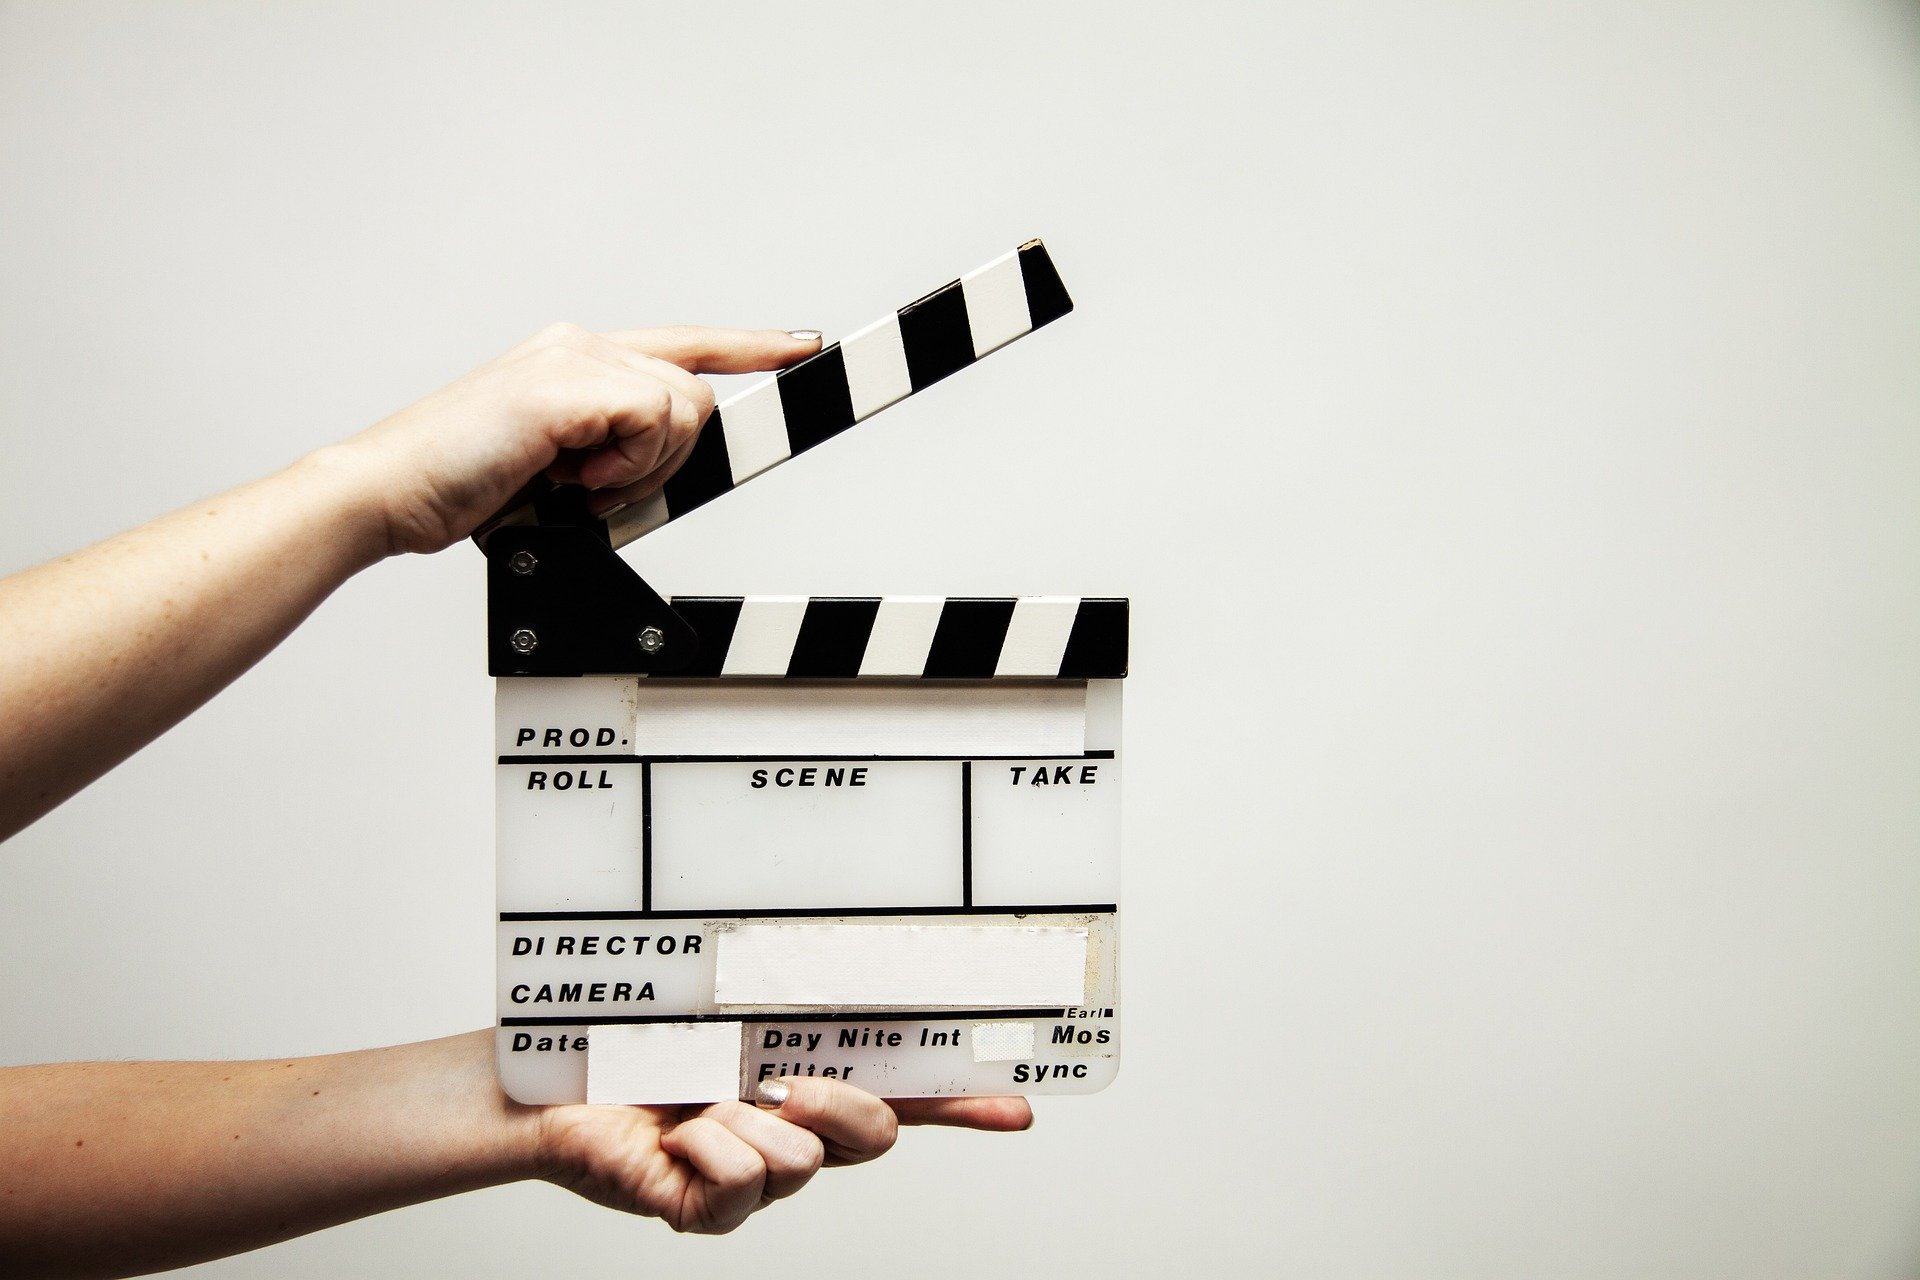 video-production-4223885_1920